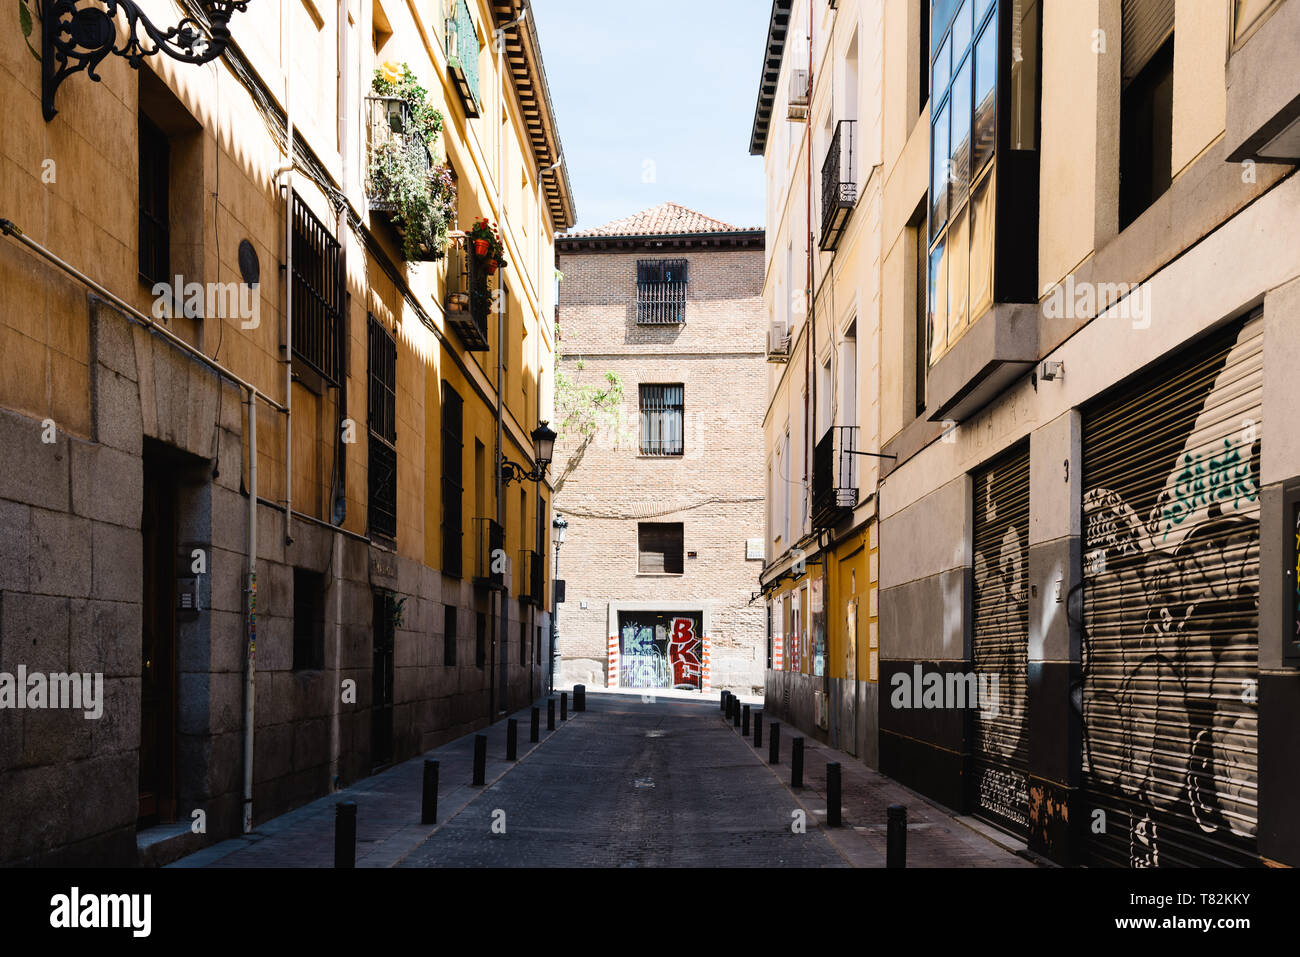 Madrid, Spain - May 2, 2019: Street in the picturesque Quarter of Las Letras. The neighbourhood is formed by narrow streets Stock Photo